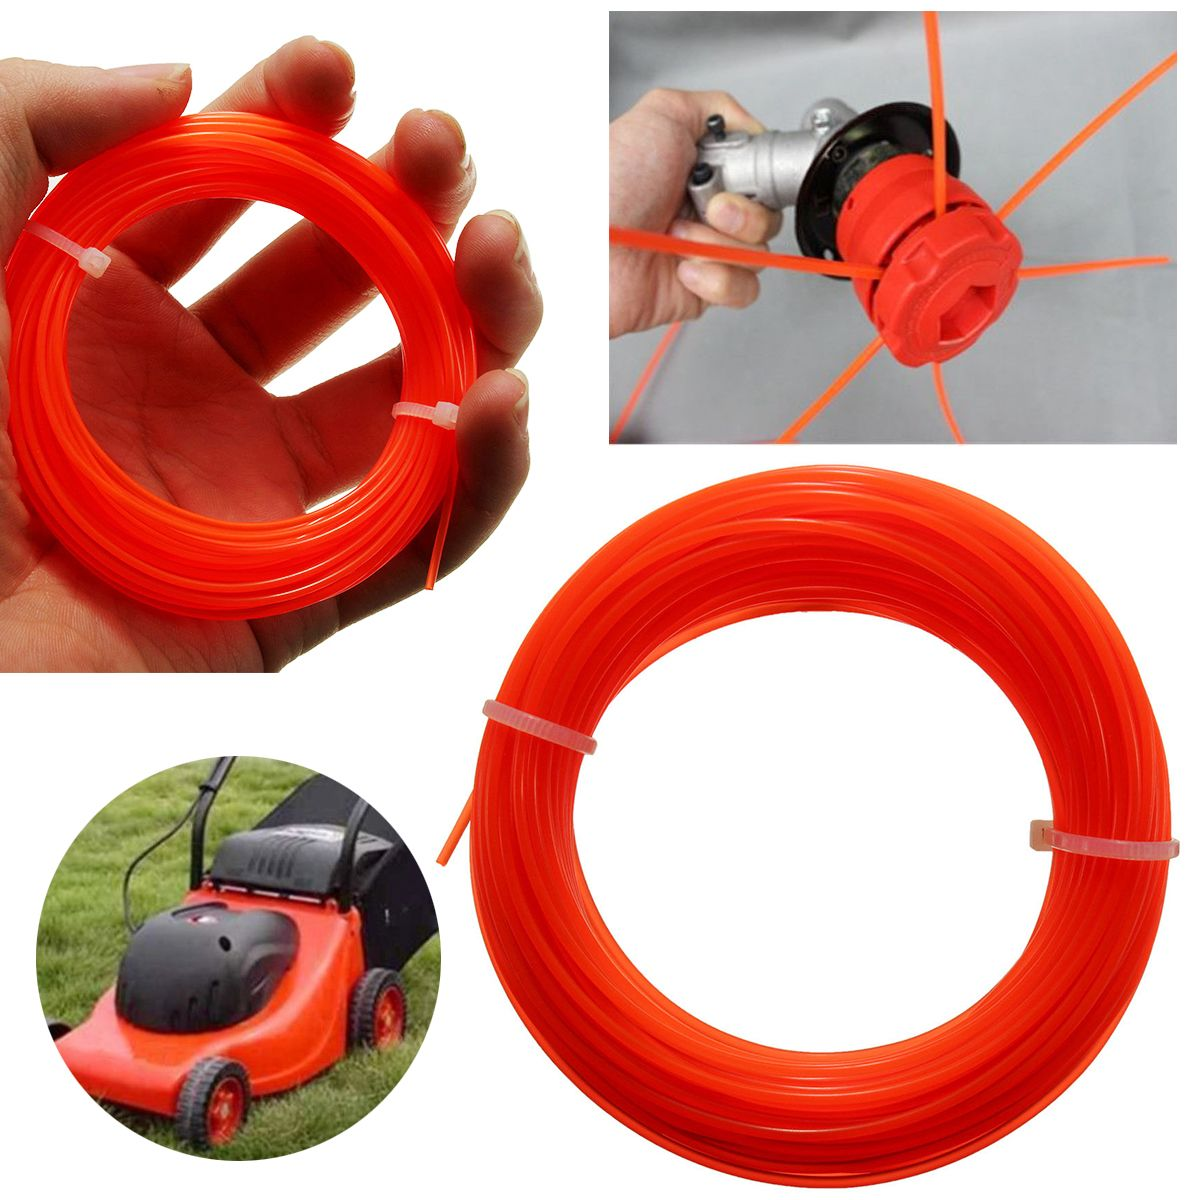 Mayitr Nylon Trimmer Line Rope Roll Fit Most Petrol Strimmers Machine Lawn Mover Parts 15m x 1.25mm mini garden nylon grass trimmer line light purple 15m